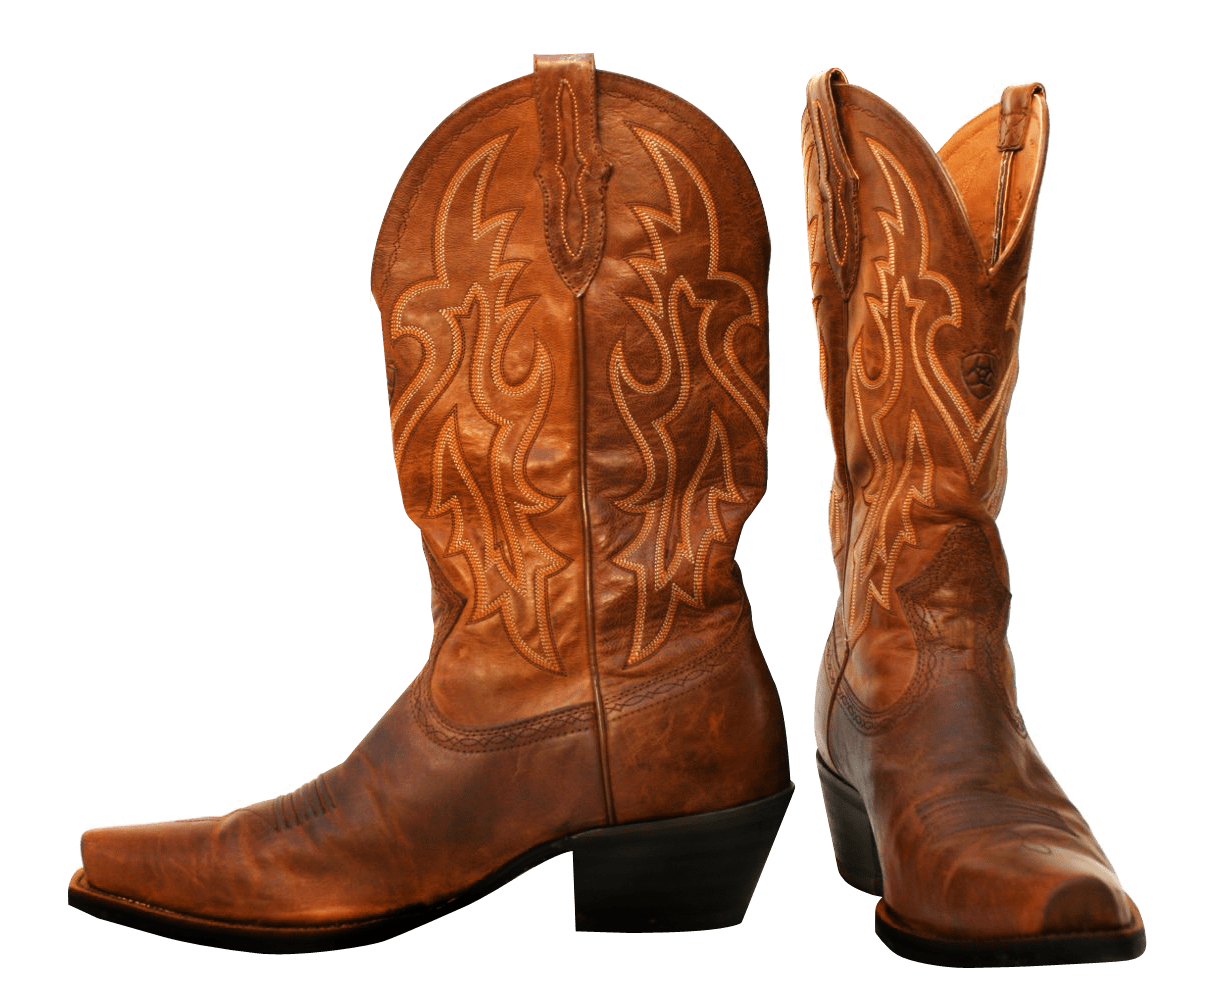 Cowboy boot png. Pair of boots transparent